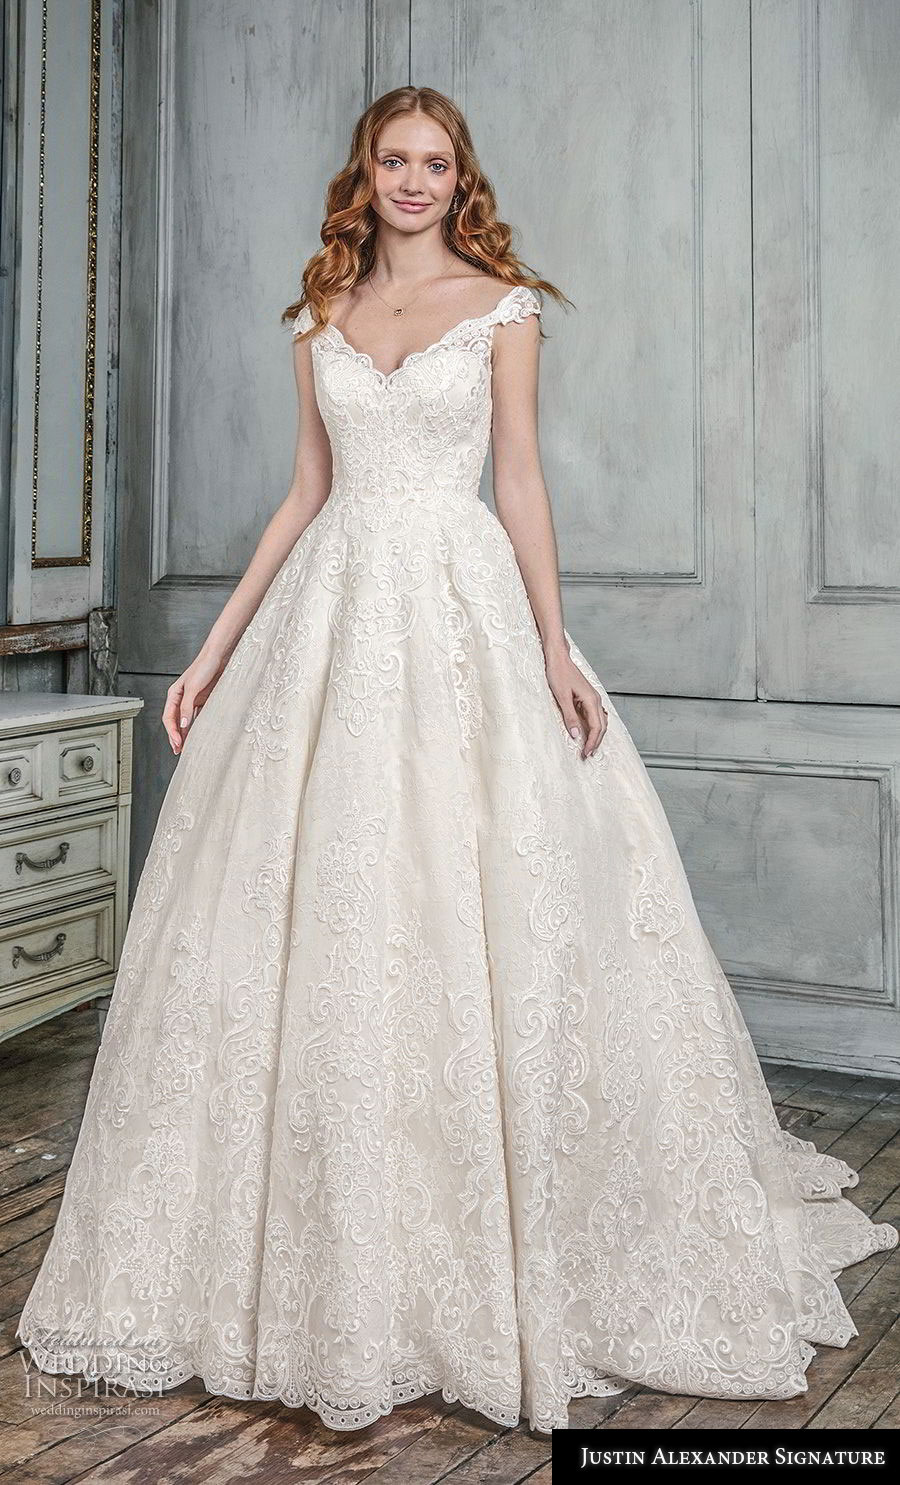 Justin Alexander Signature Fall 2018 Wedding Dresses | Wedding Inspirasi